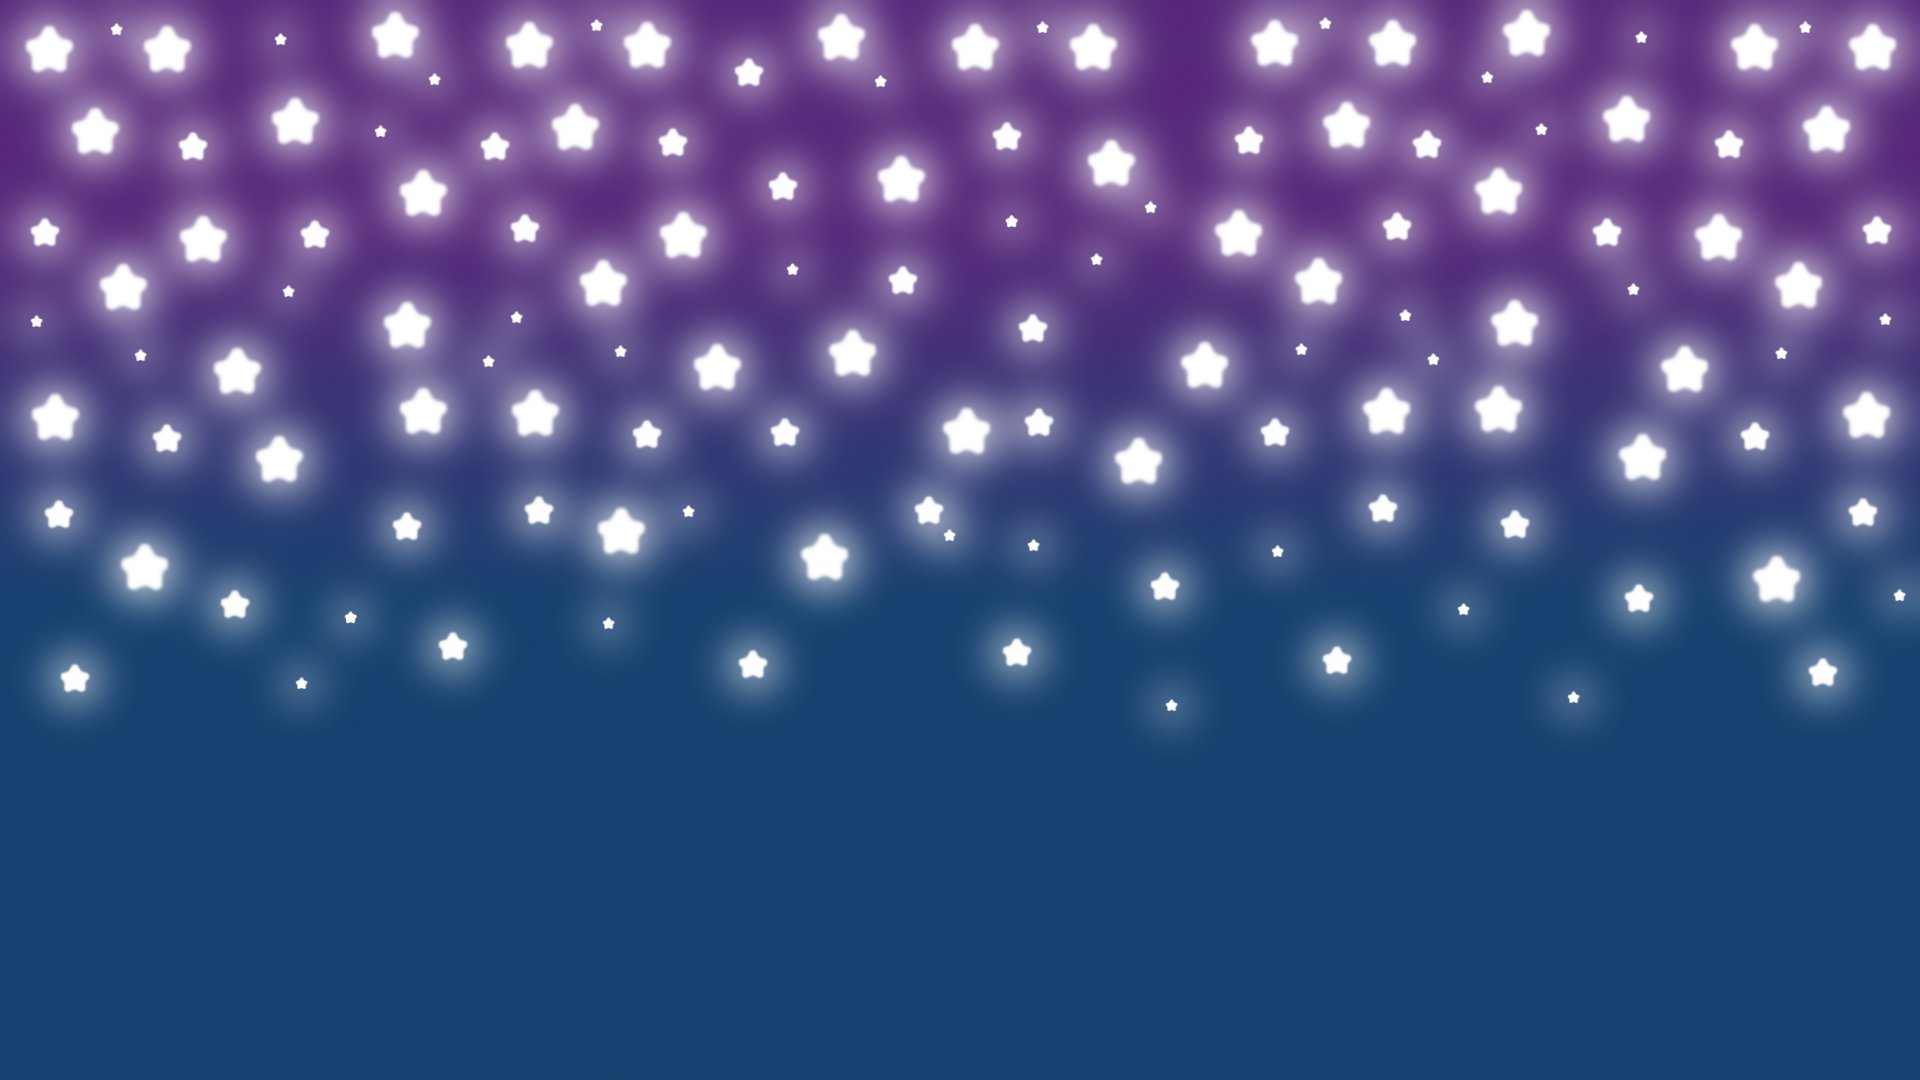 Purple And Blue Stars Background File newest star background Purple Hearts And Stars Background